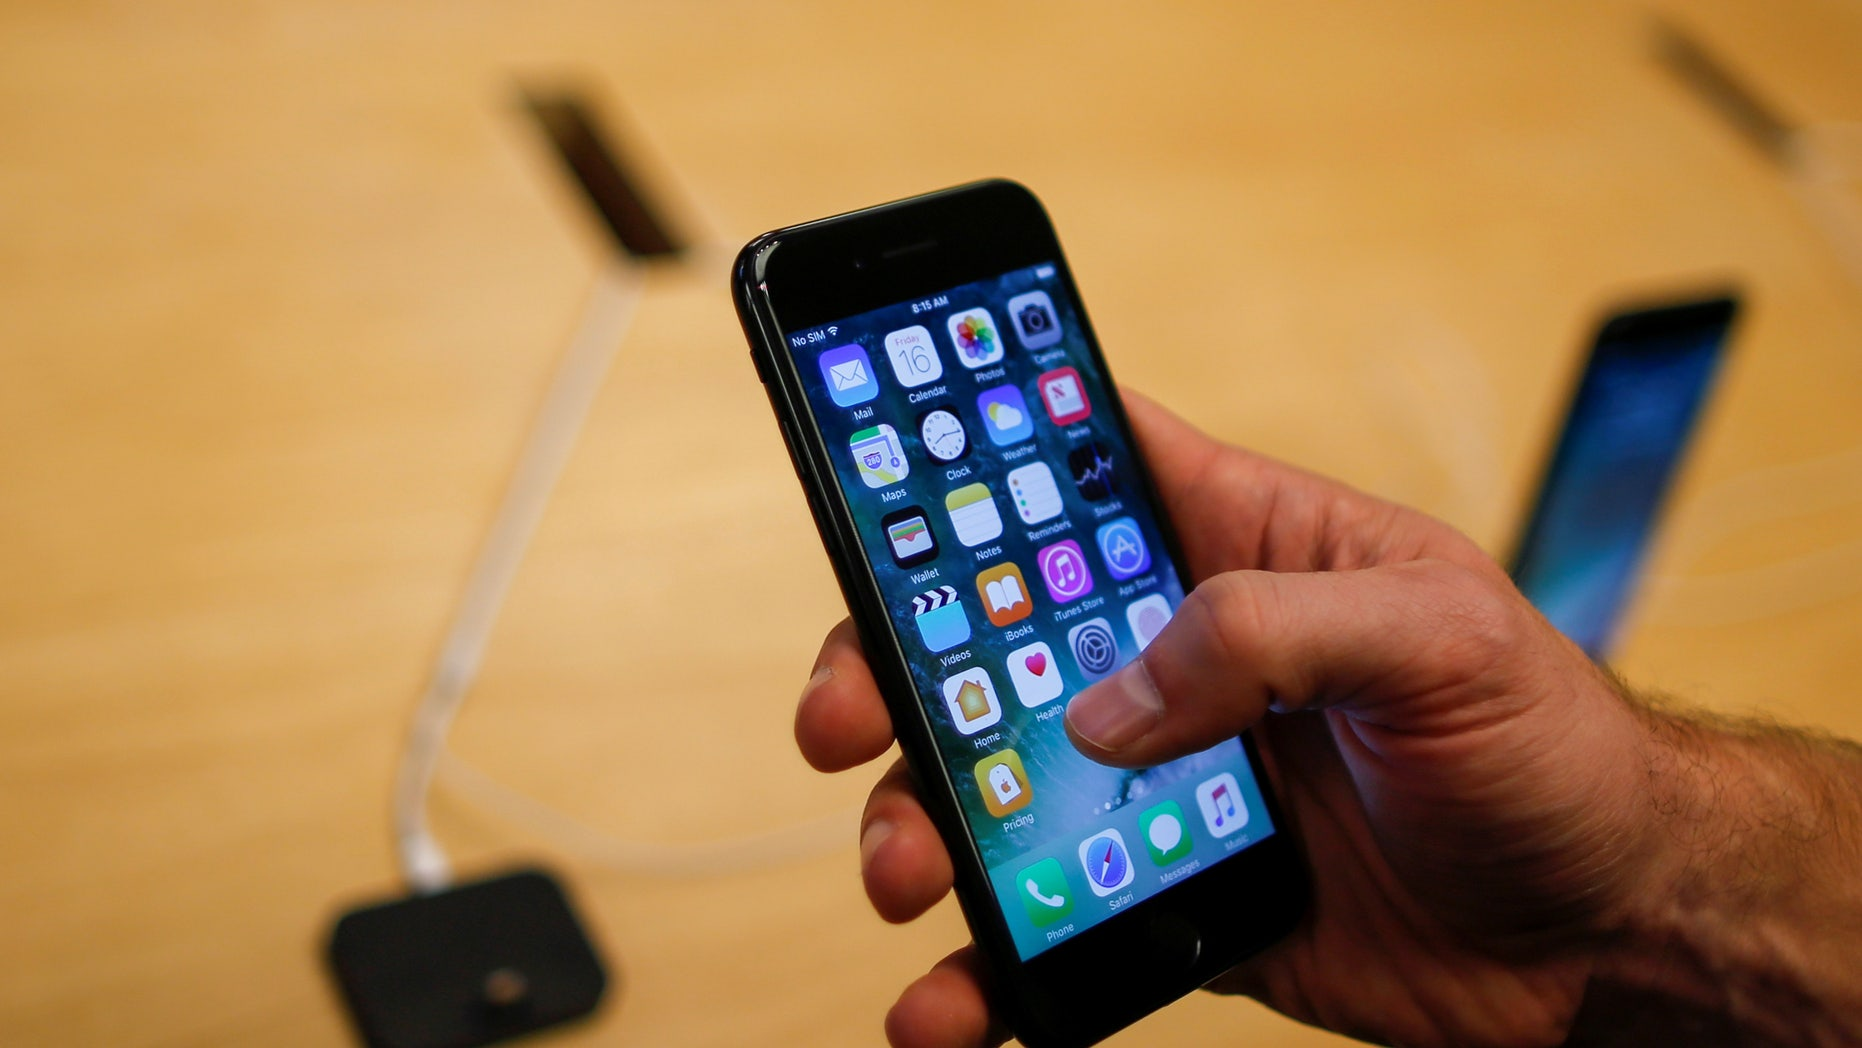 A customer takes a look at the new iPhone 7 smartphone inside of an Apple Inc. store in New York, U.S., September 16, 2016. (REUTERS/Eduardo Munoz)